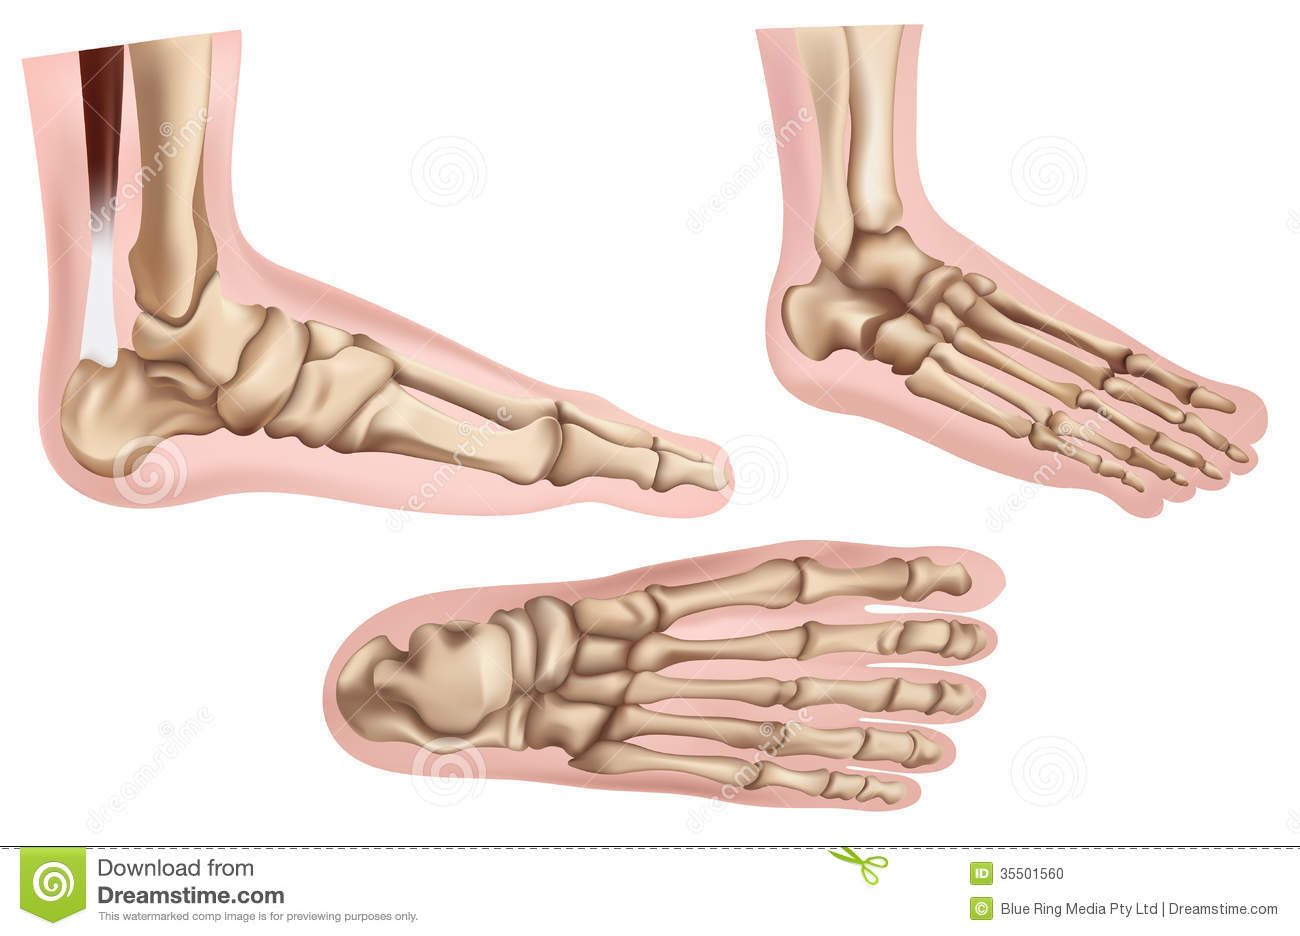 Stock Photo Foot Bones Illustration White Background Image35501560